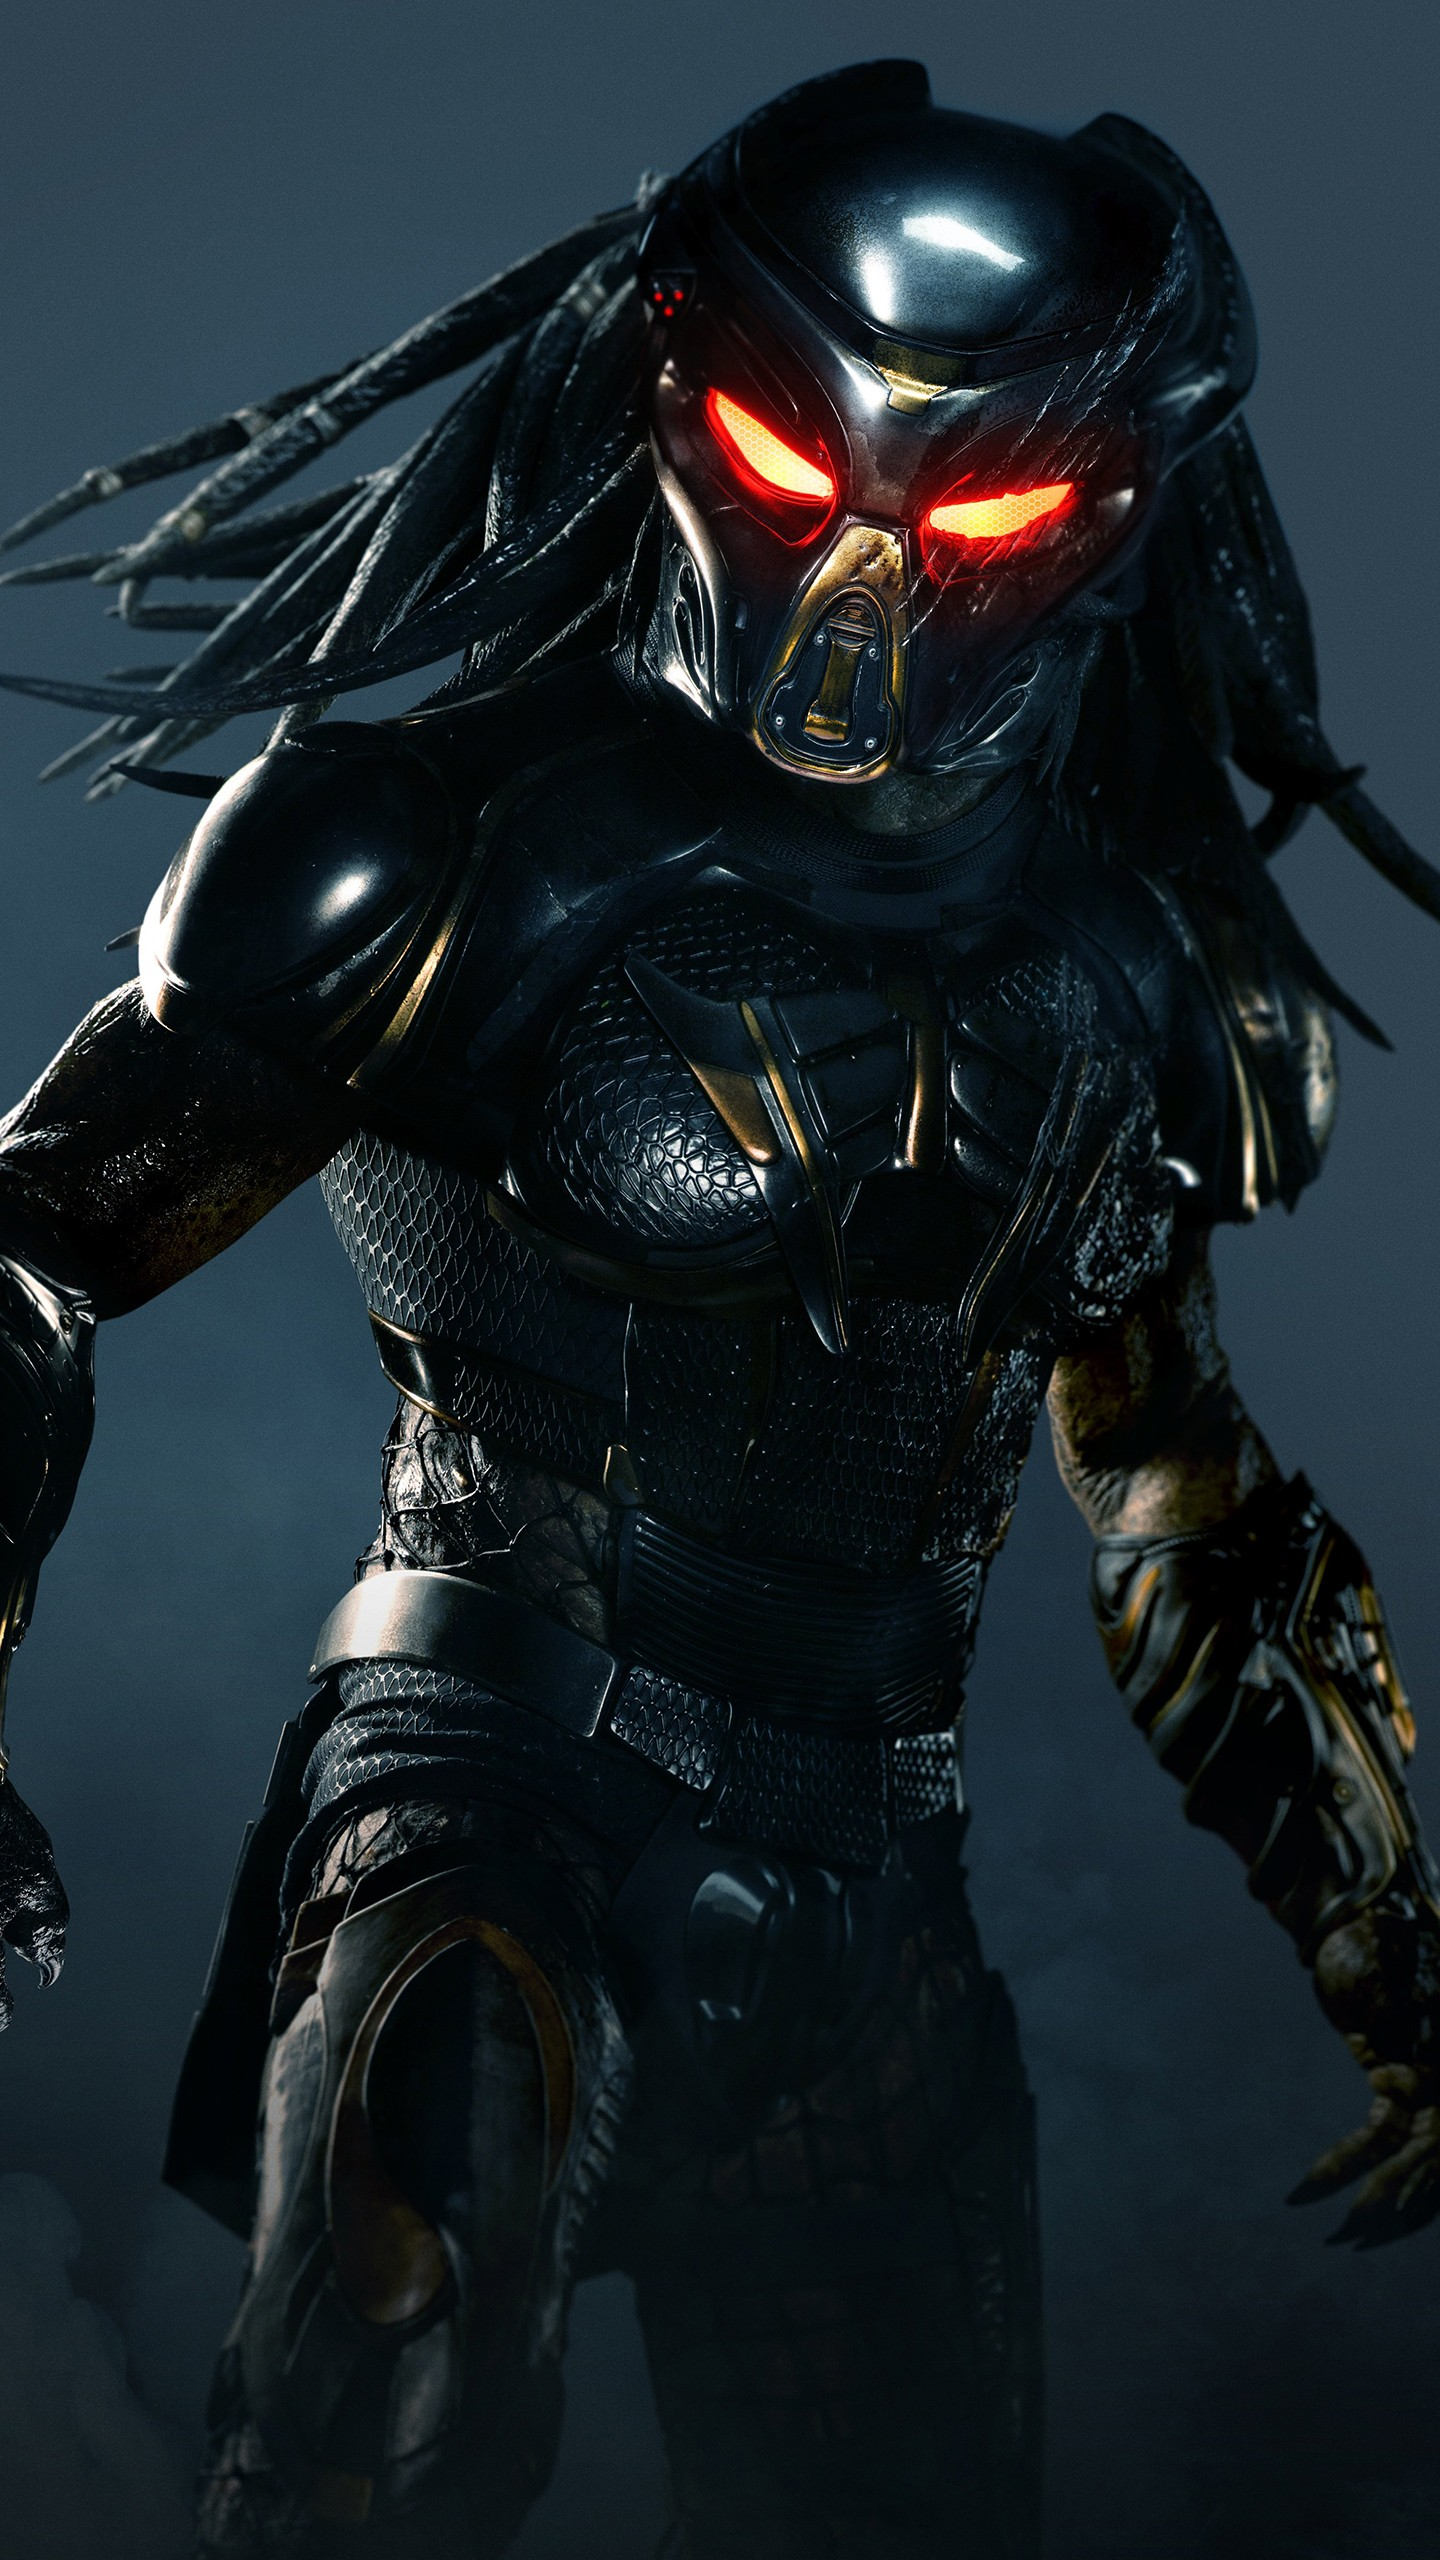 Ultra Hd Predator Wallpaper 4k 1440x2560 Download Hd Wallpaper Wallpapertip